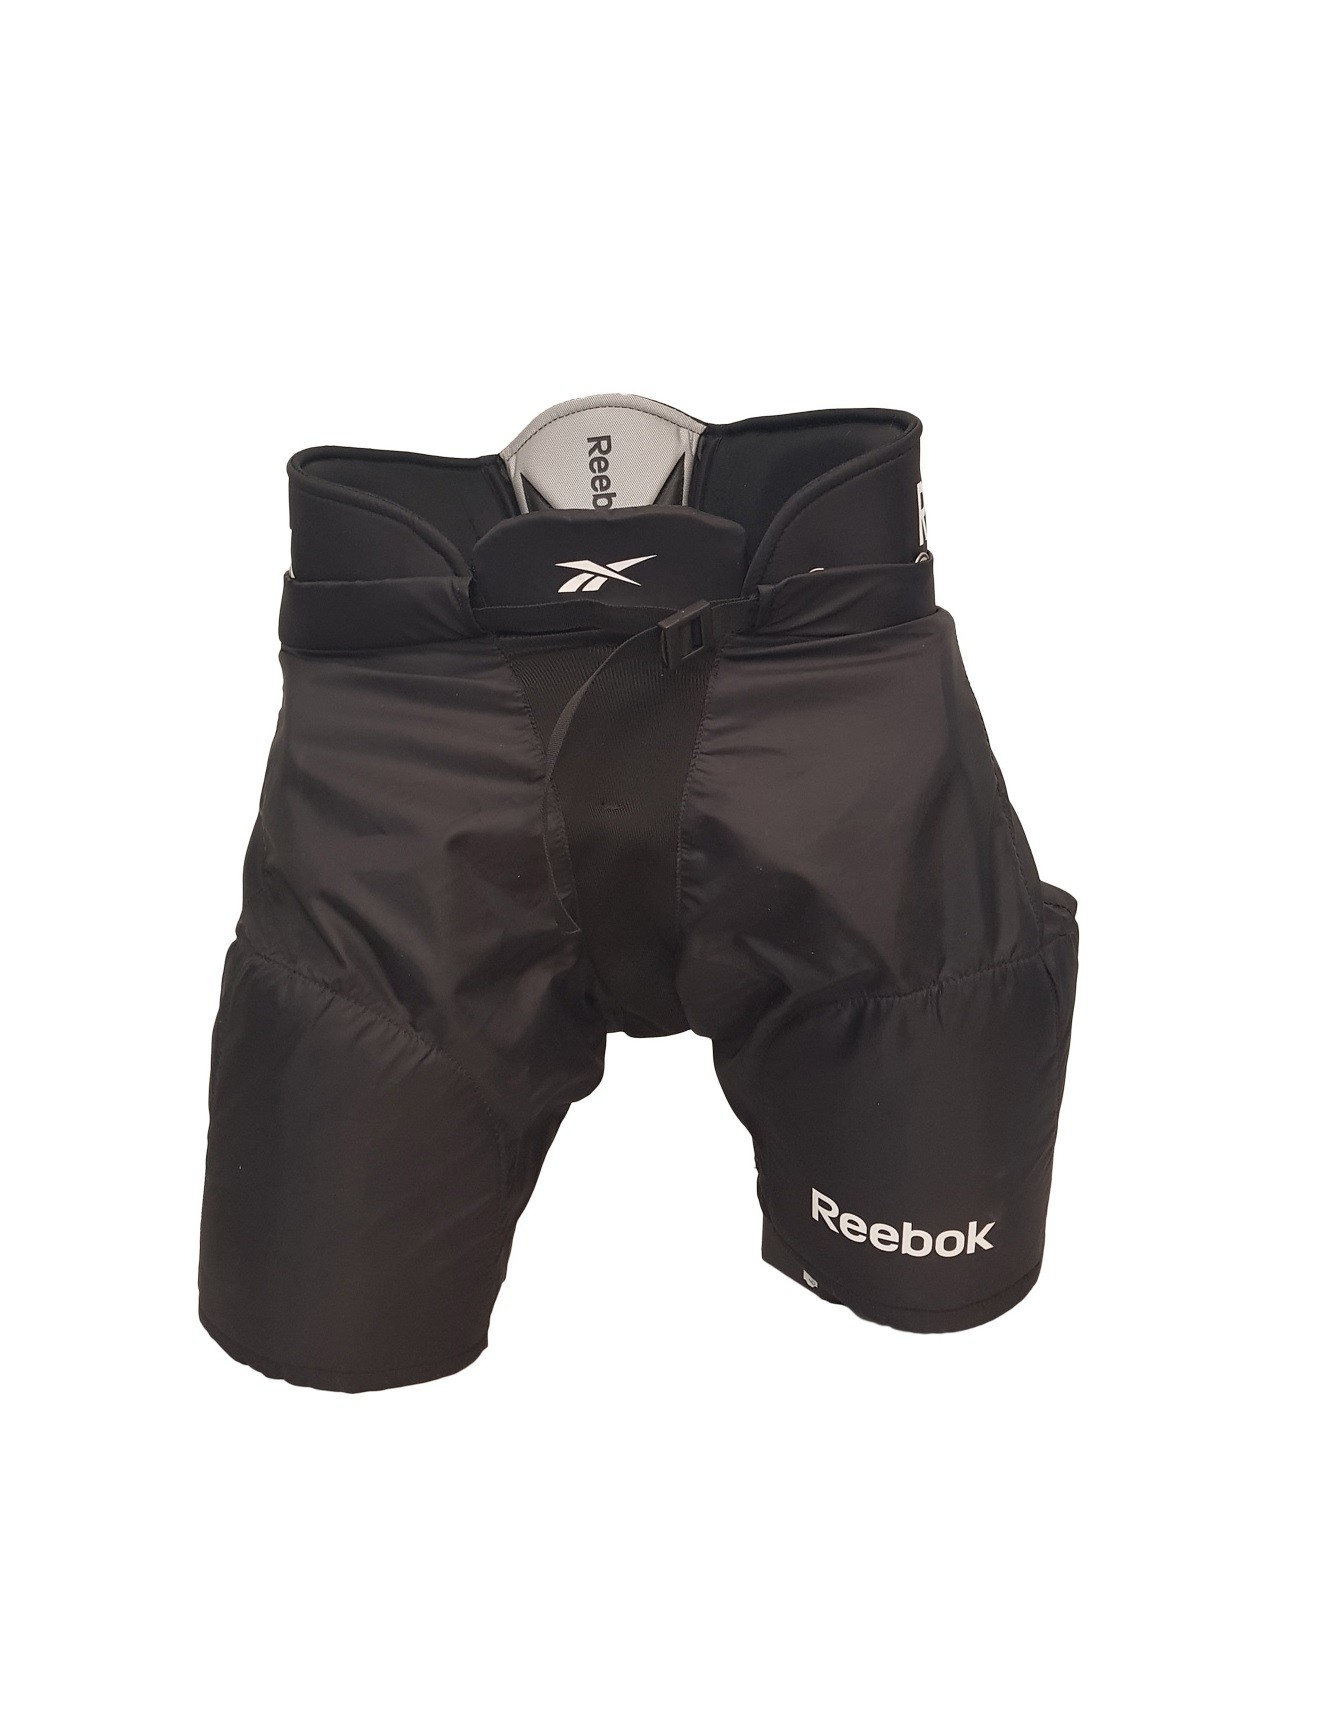 Reebok Silver Junior Ice Hockey Pants